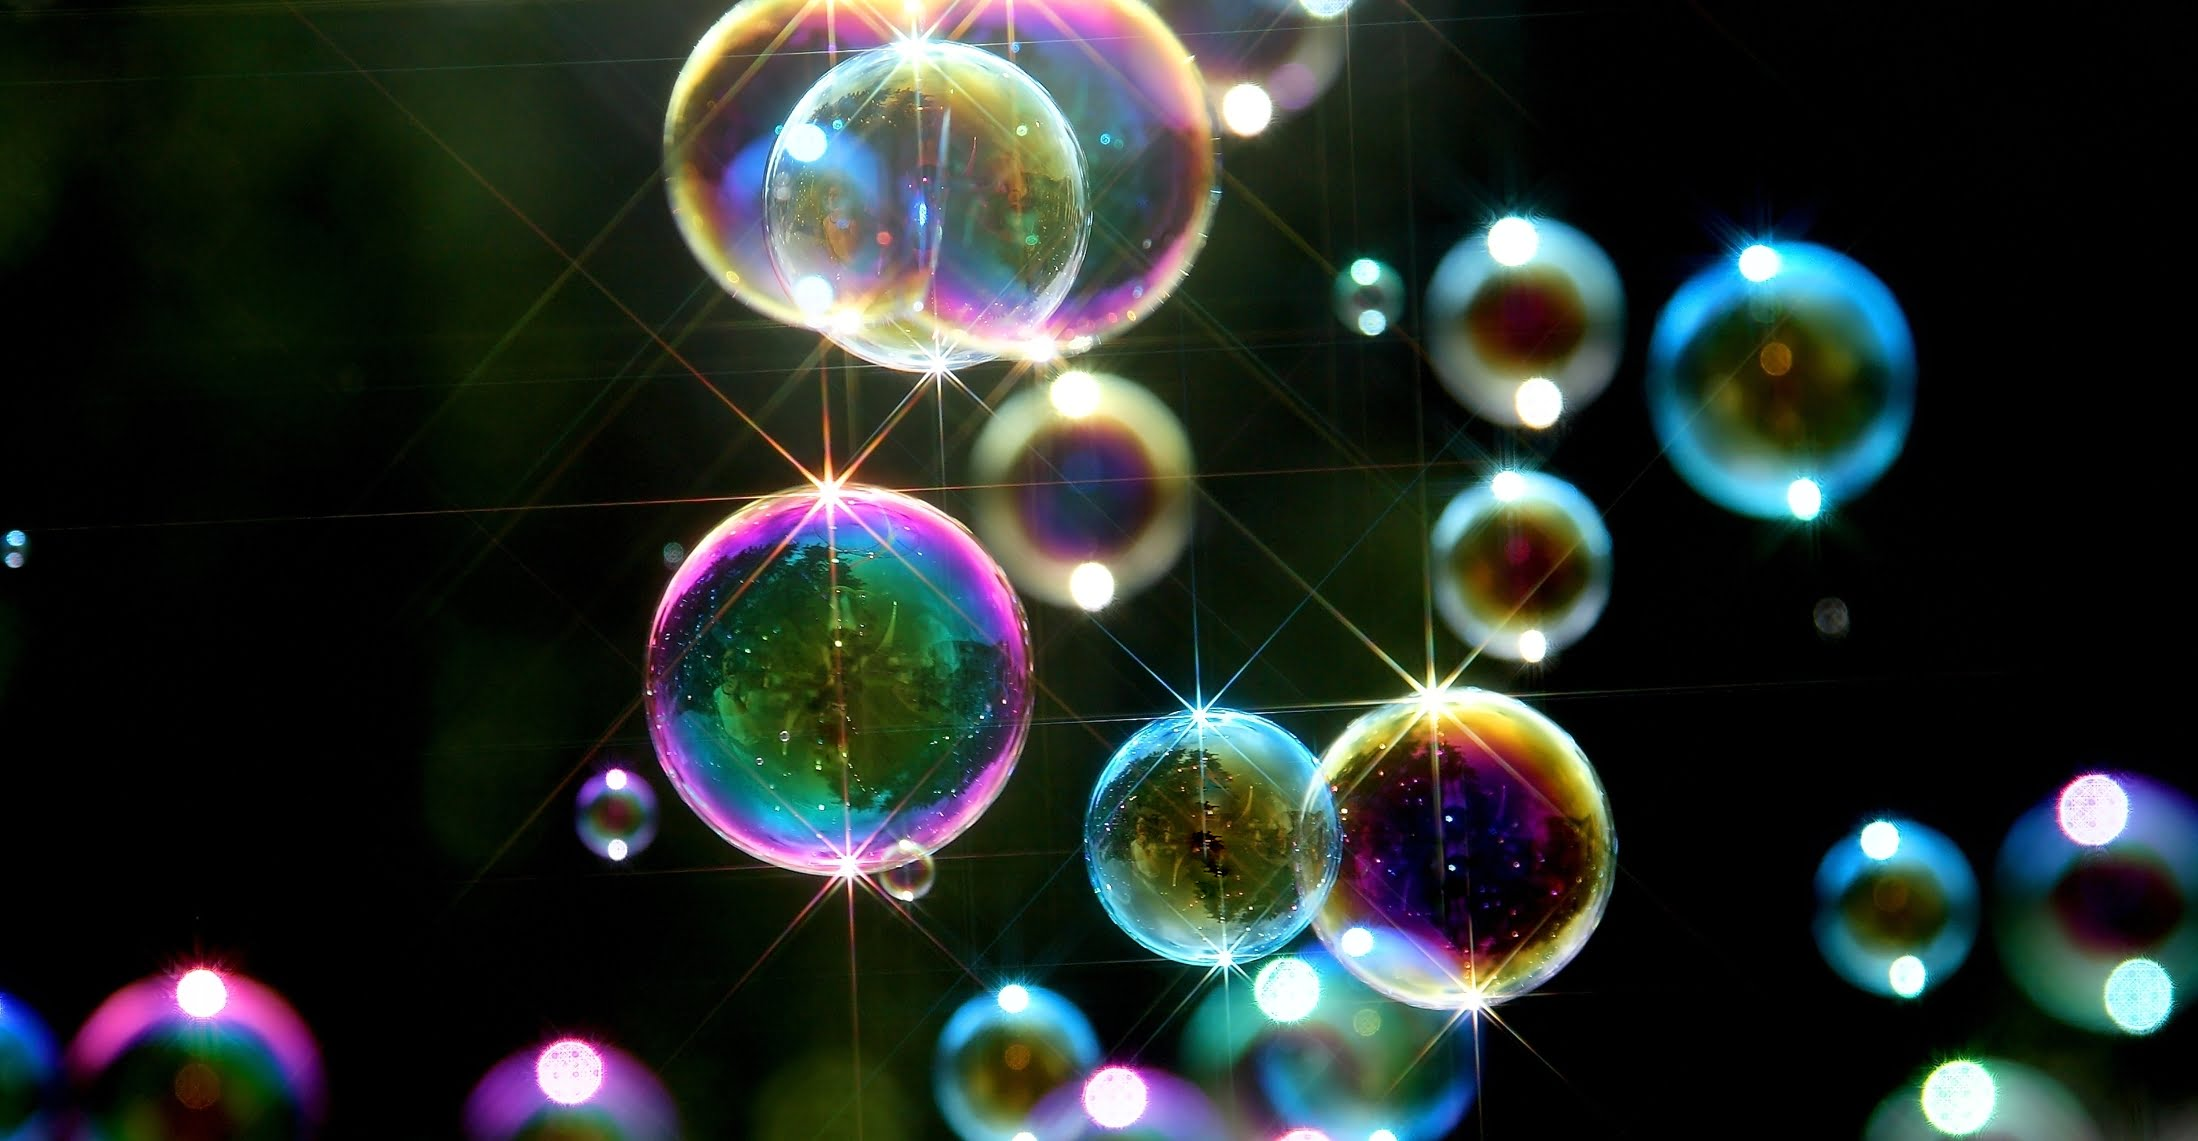 Powerup soap bubbles